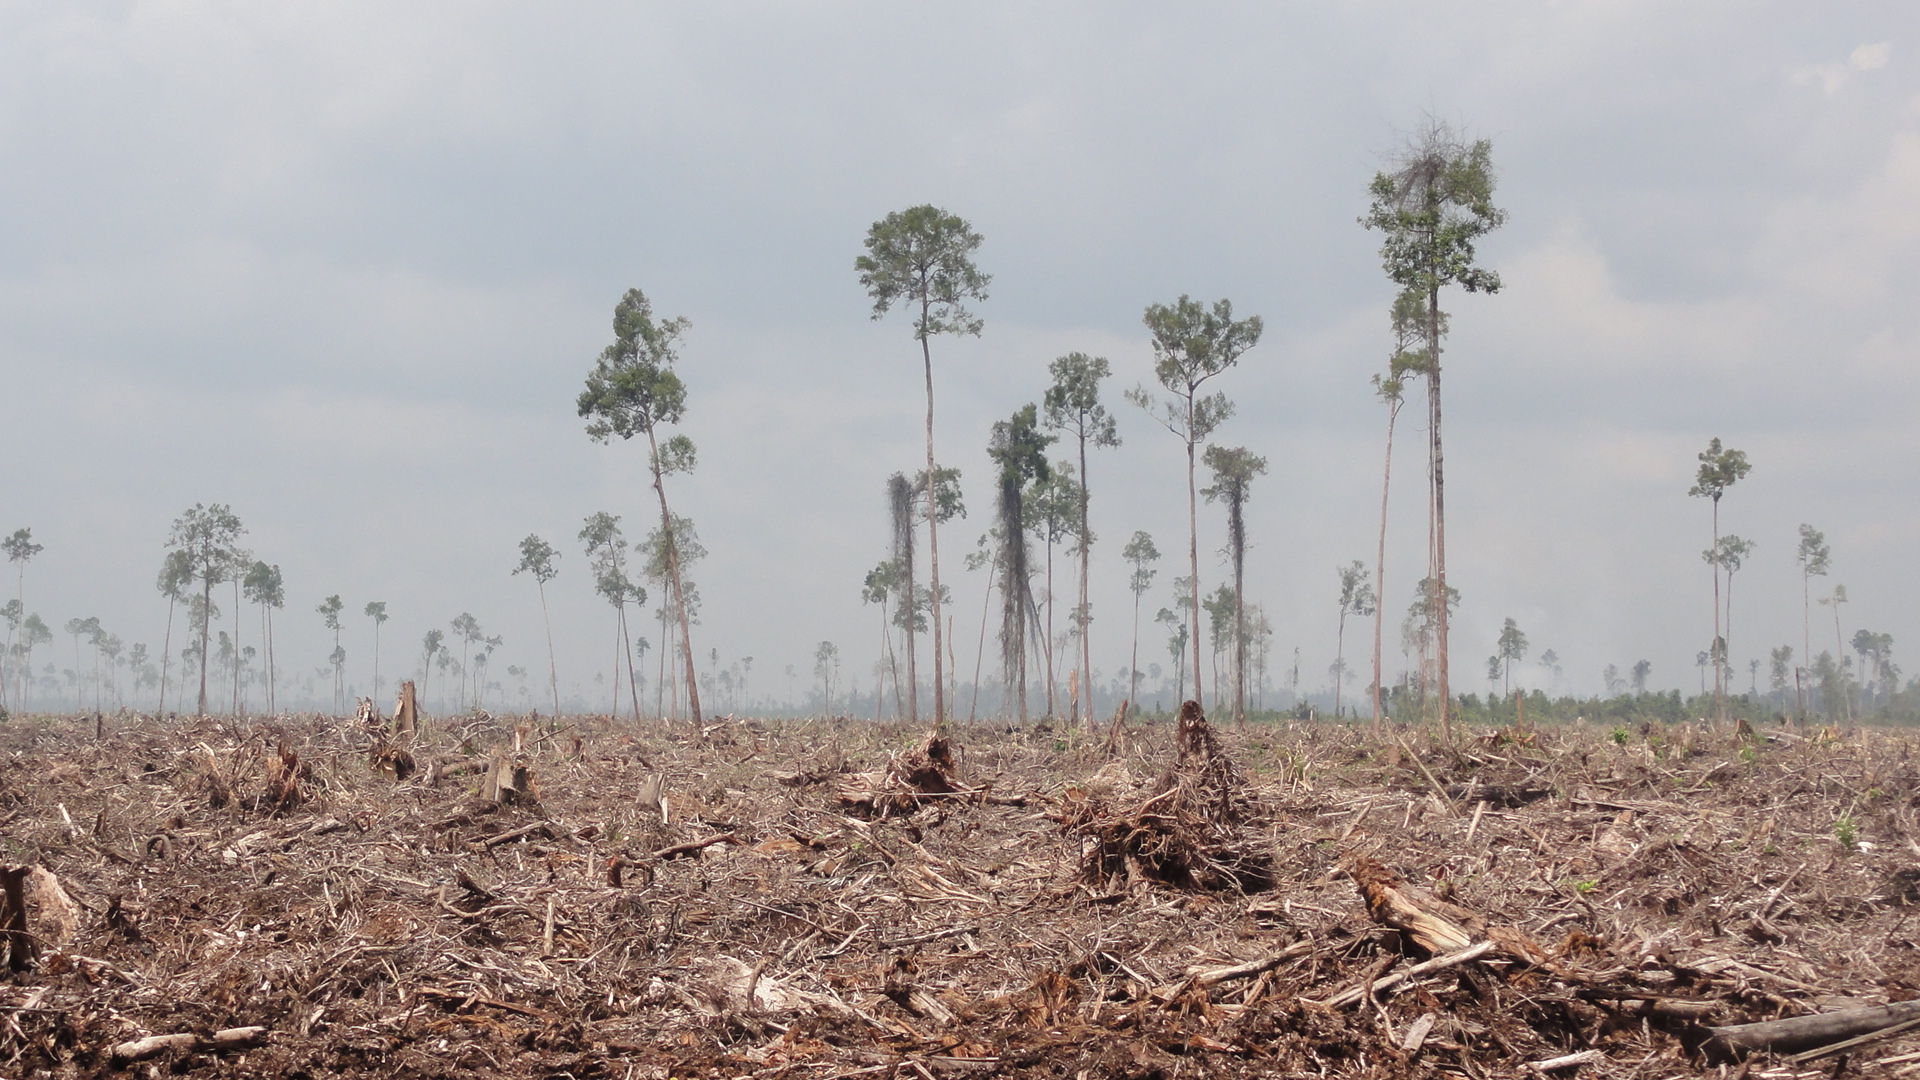 rainforest deforestation Introduction deforestation of the world's rainforests has numerous impacts on the environment and is occurring at alarming rates as a result, species extinction has become a daily occurrence.